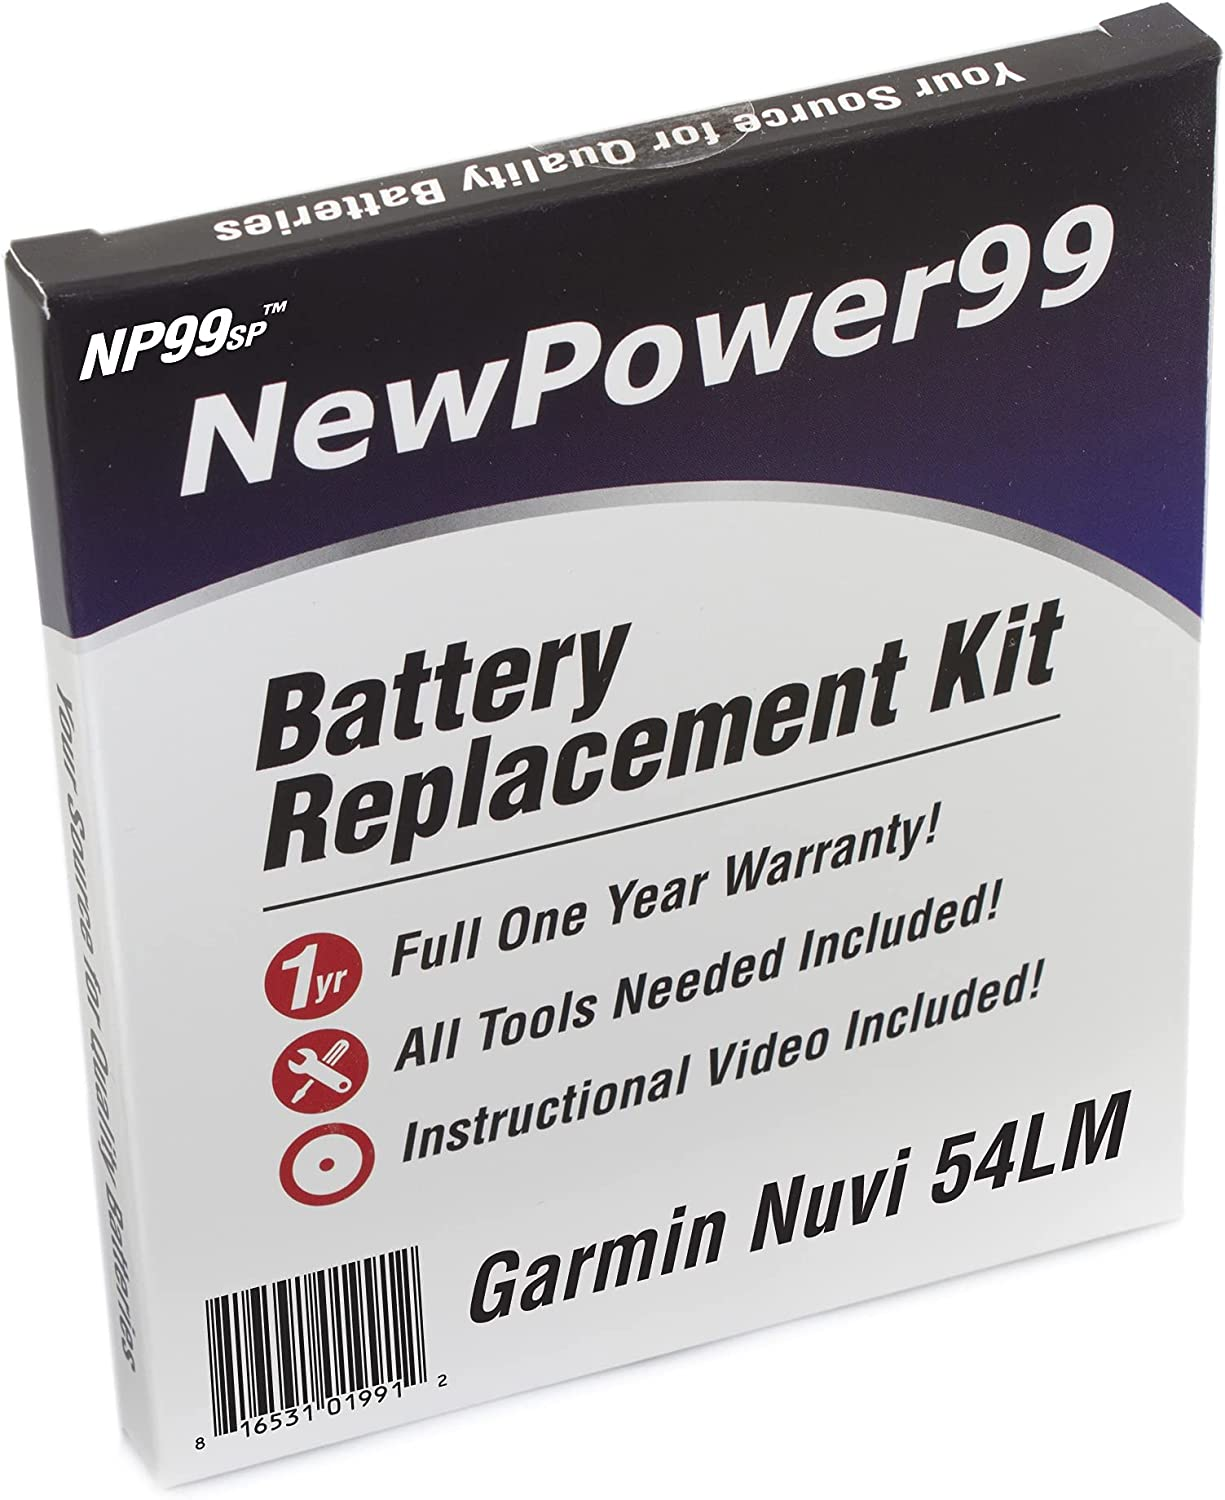 NewPower99 Battery Replacement Kit with Battery, Video Instructions and Tools for Garmin Nuvi 54LM